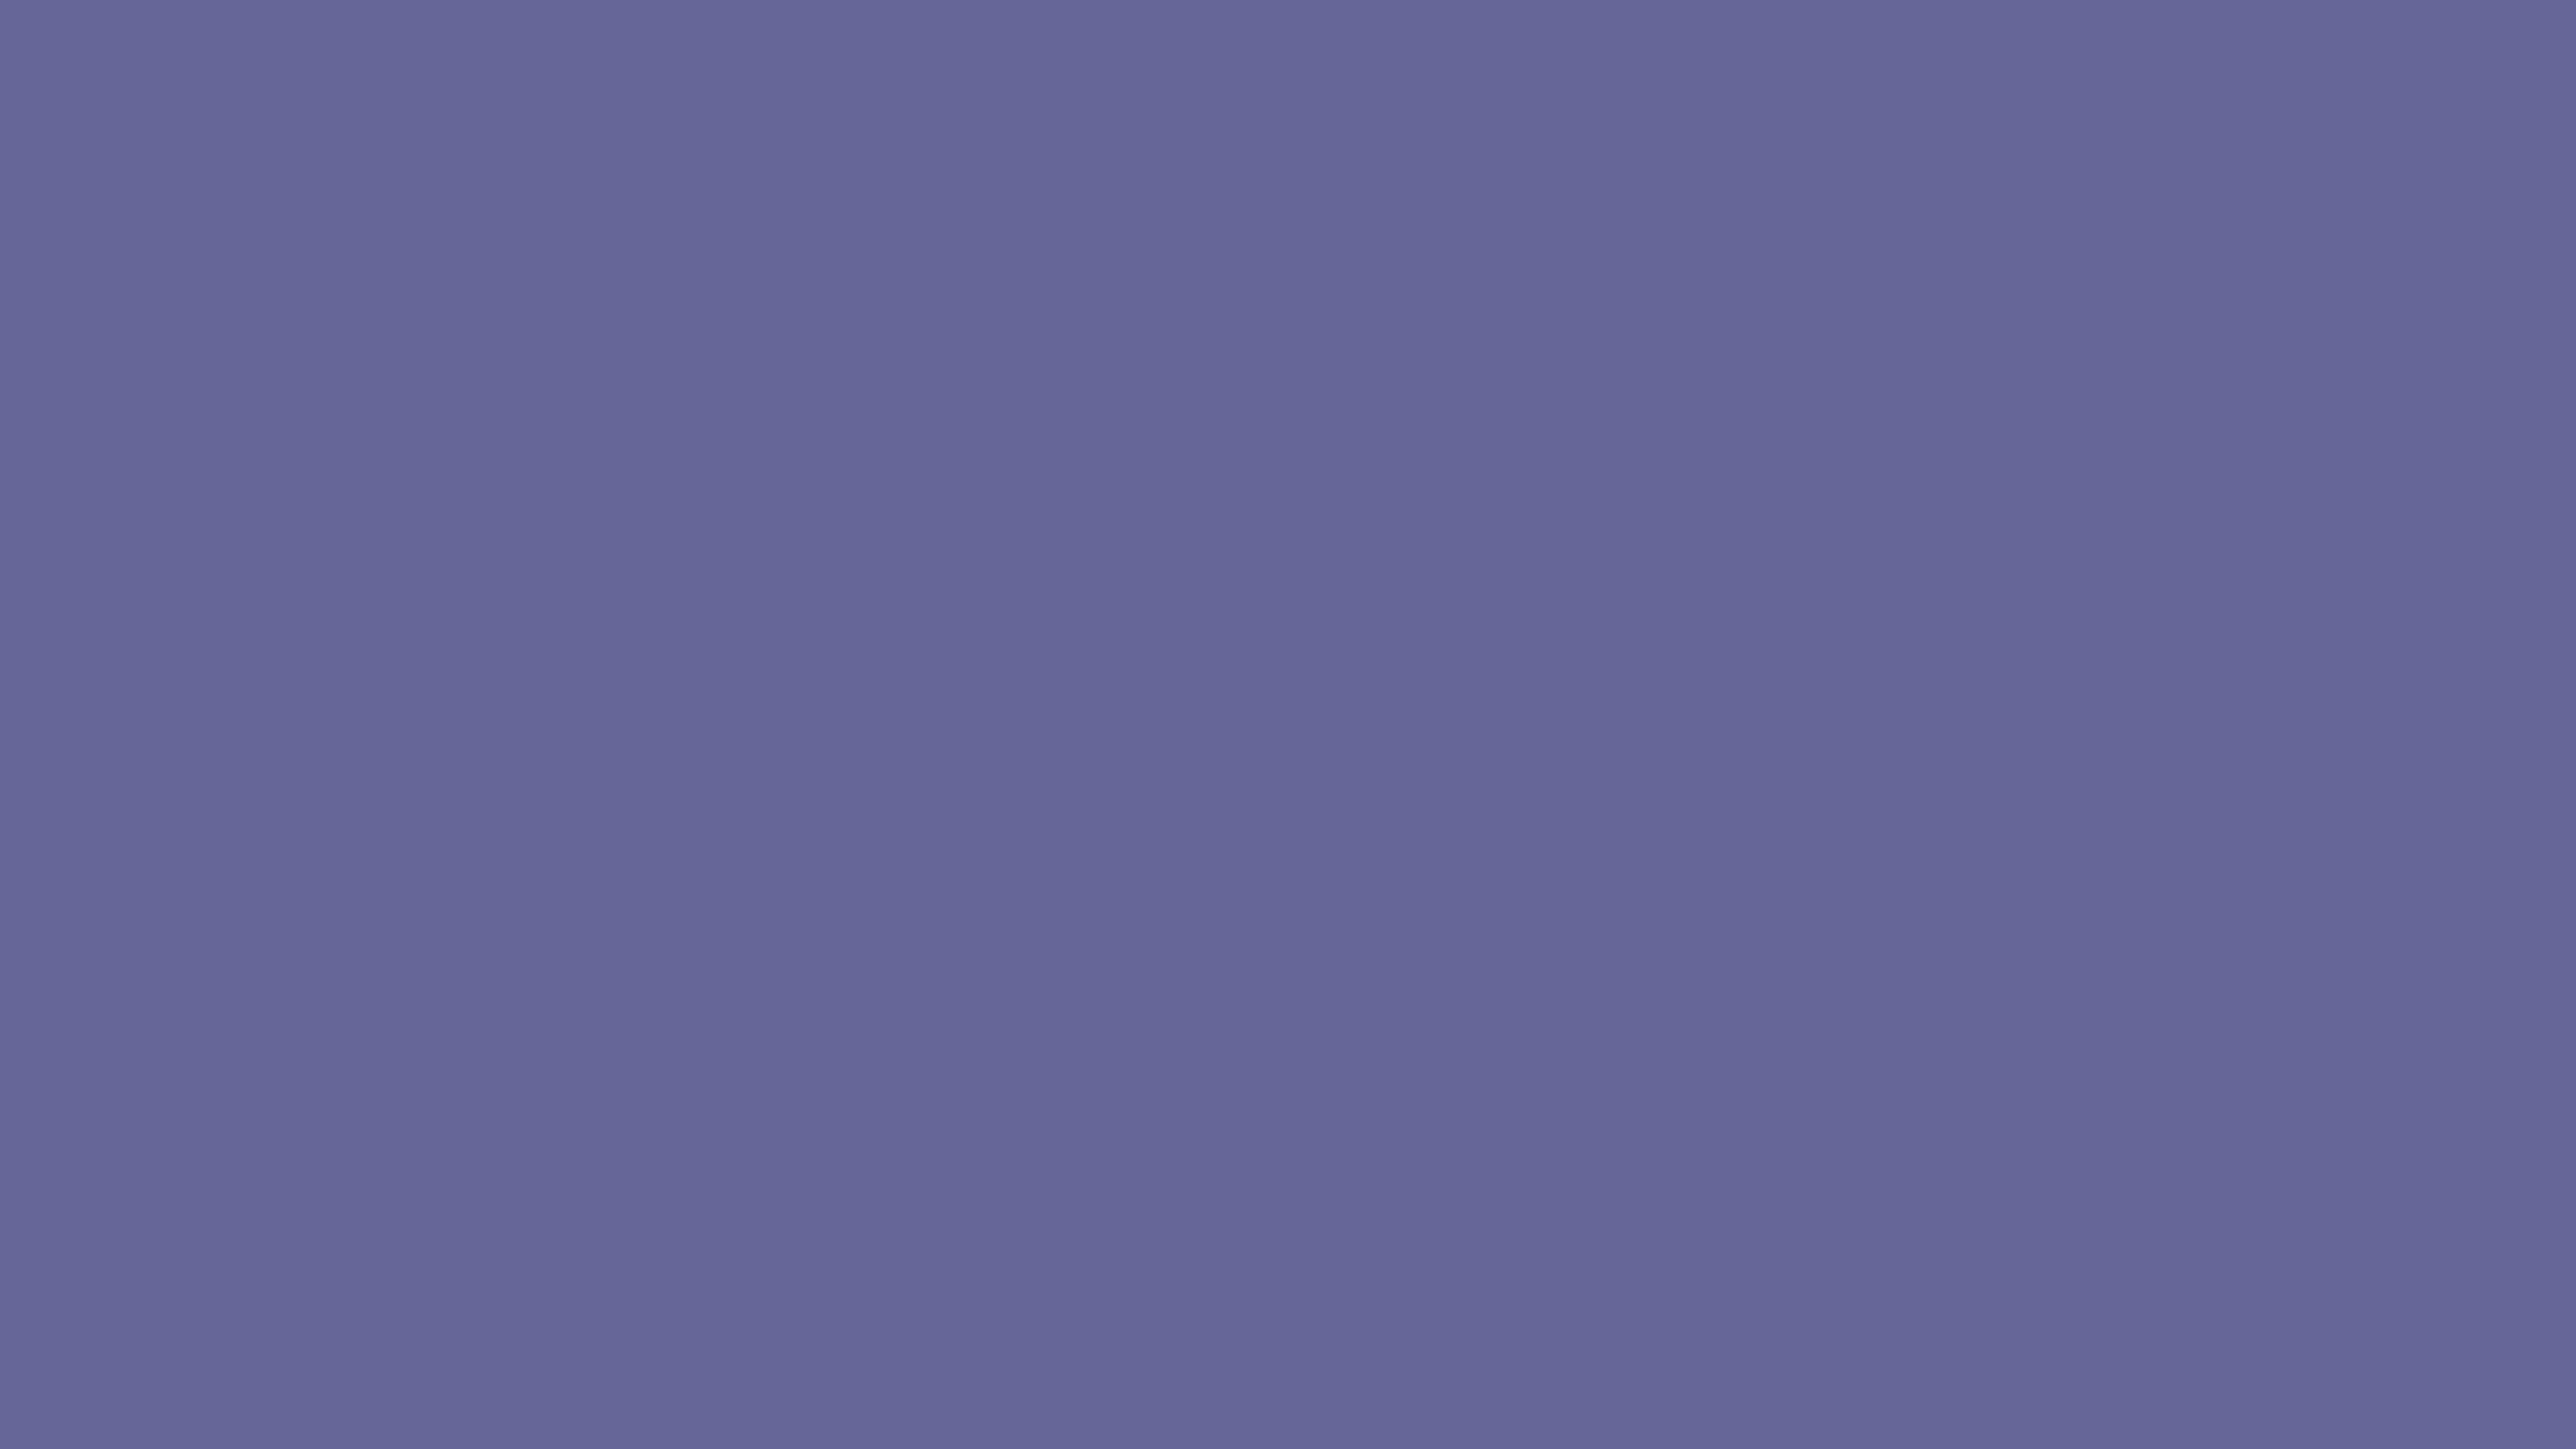 4096x2304 Dark Blue-gray Solid Color Background